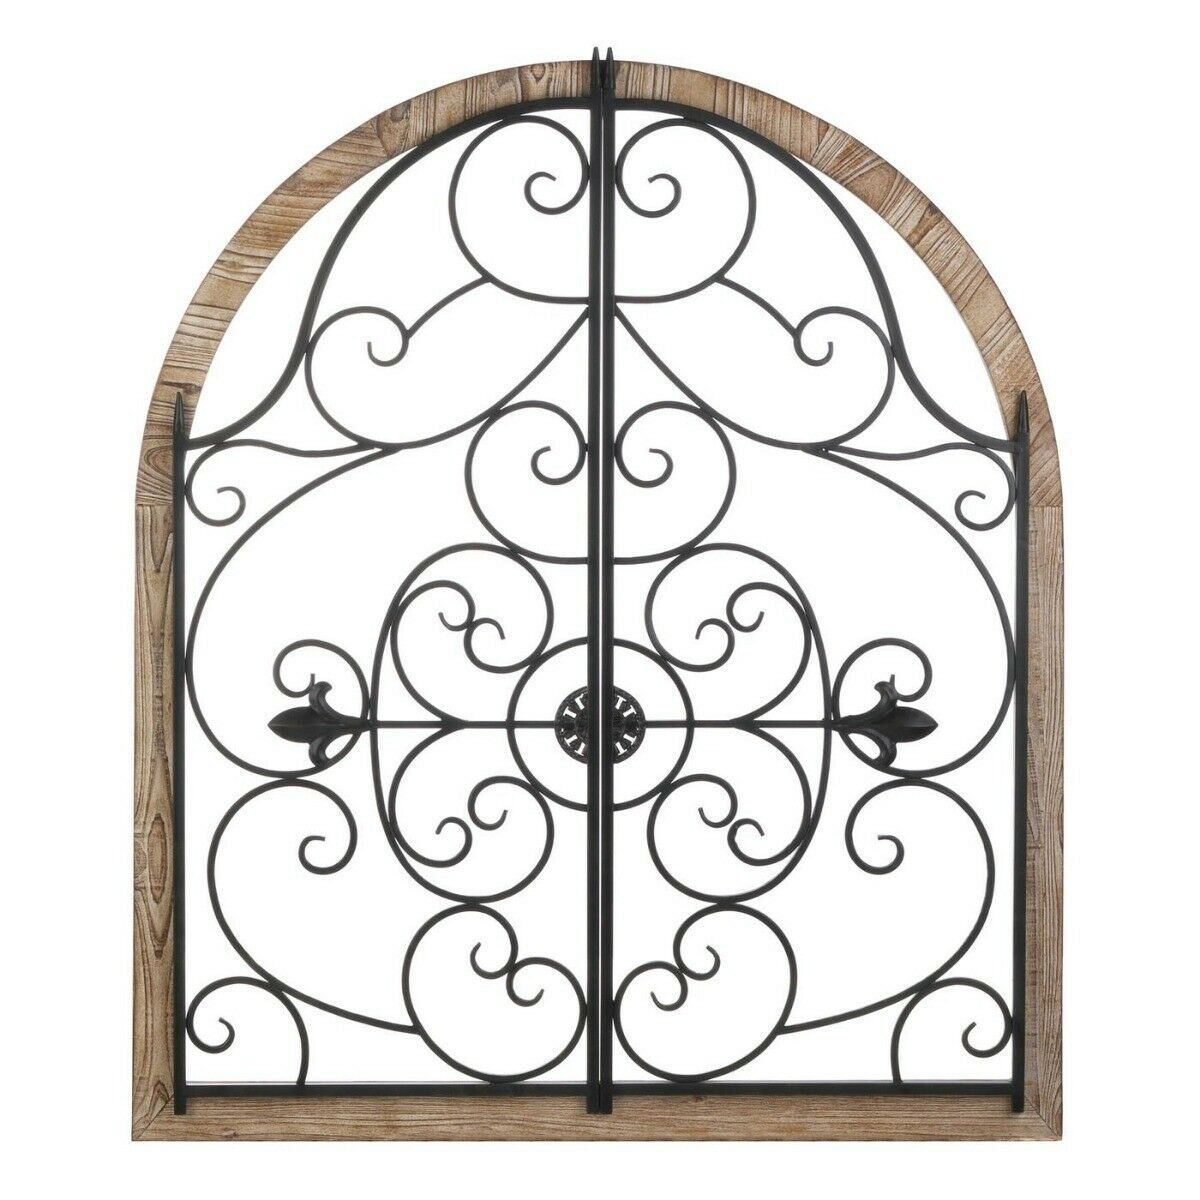 """Arched Wood & Wrought Iron Wall Plaque Gate Design 35"""" High Indoors/Outdoors - $94.95"""